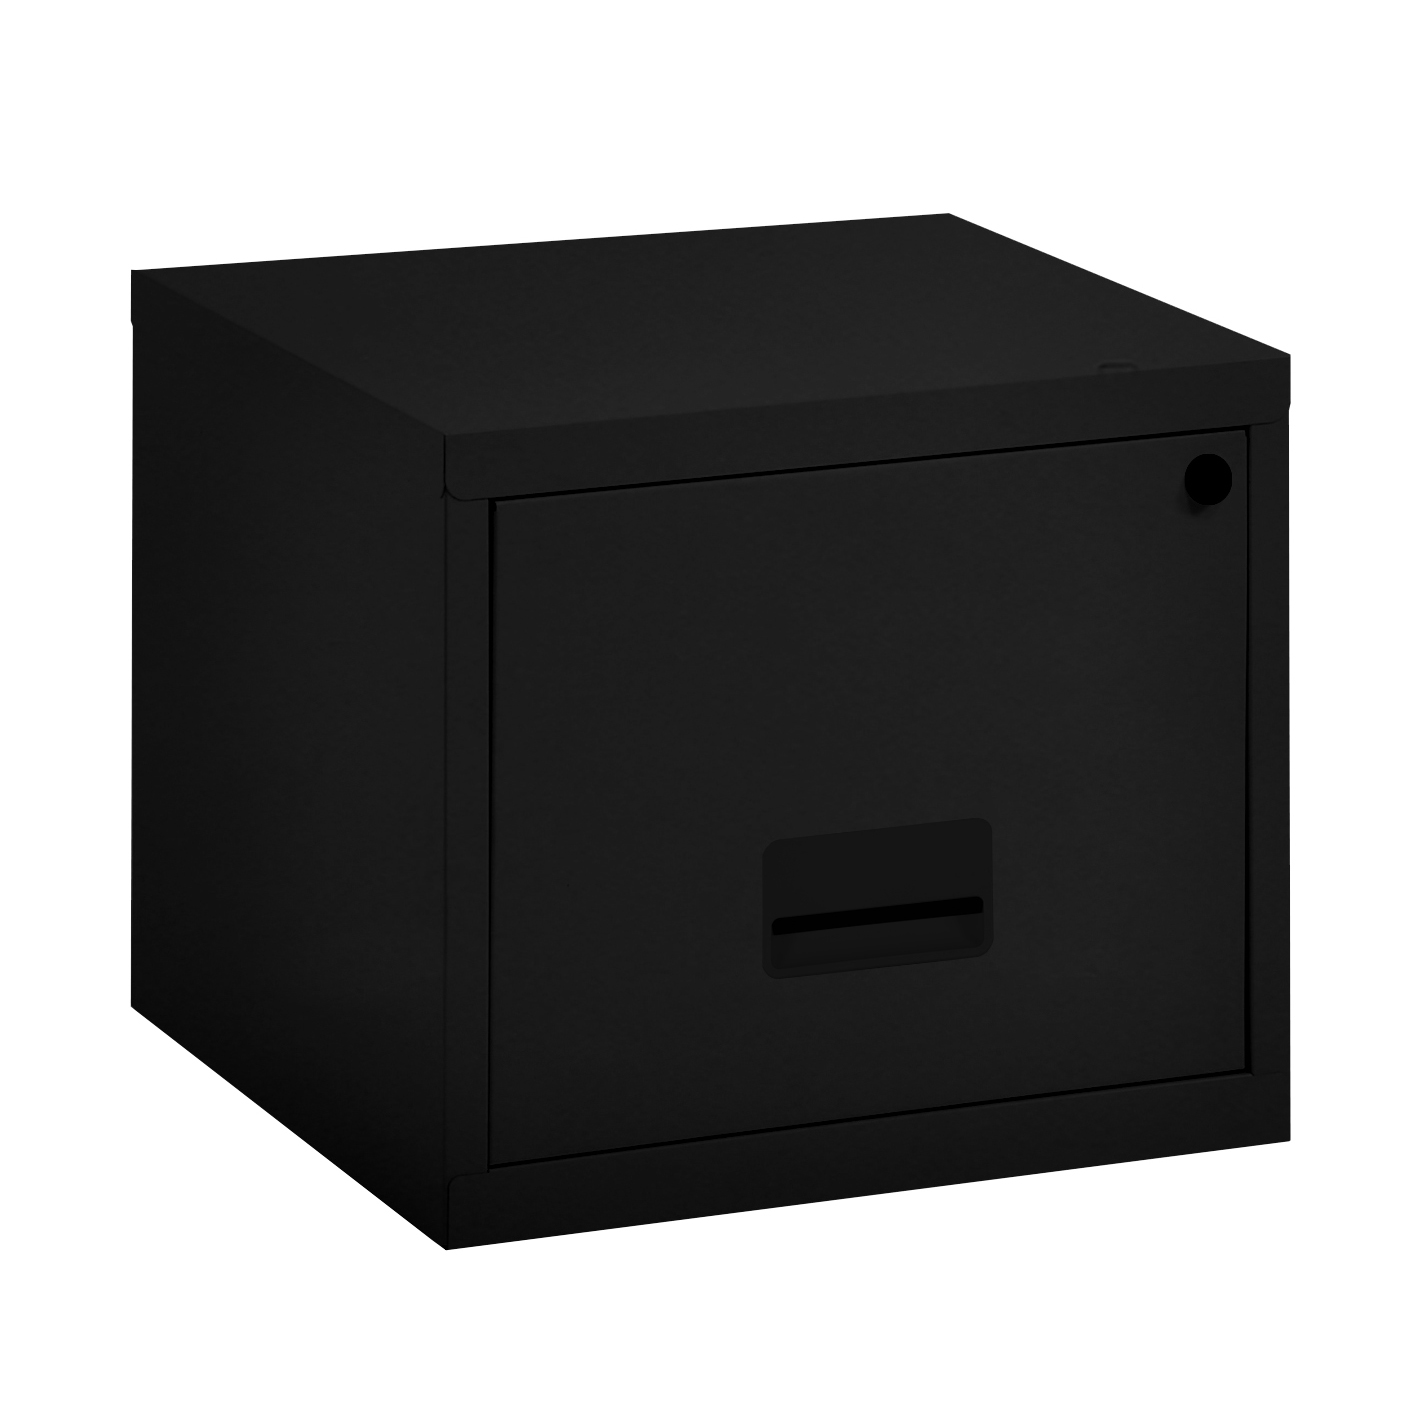 Filing cabinets or accesories Filing Cabinet Steel 1 Drawer A4 400x400x370mm Ref 99001